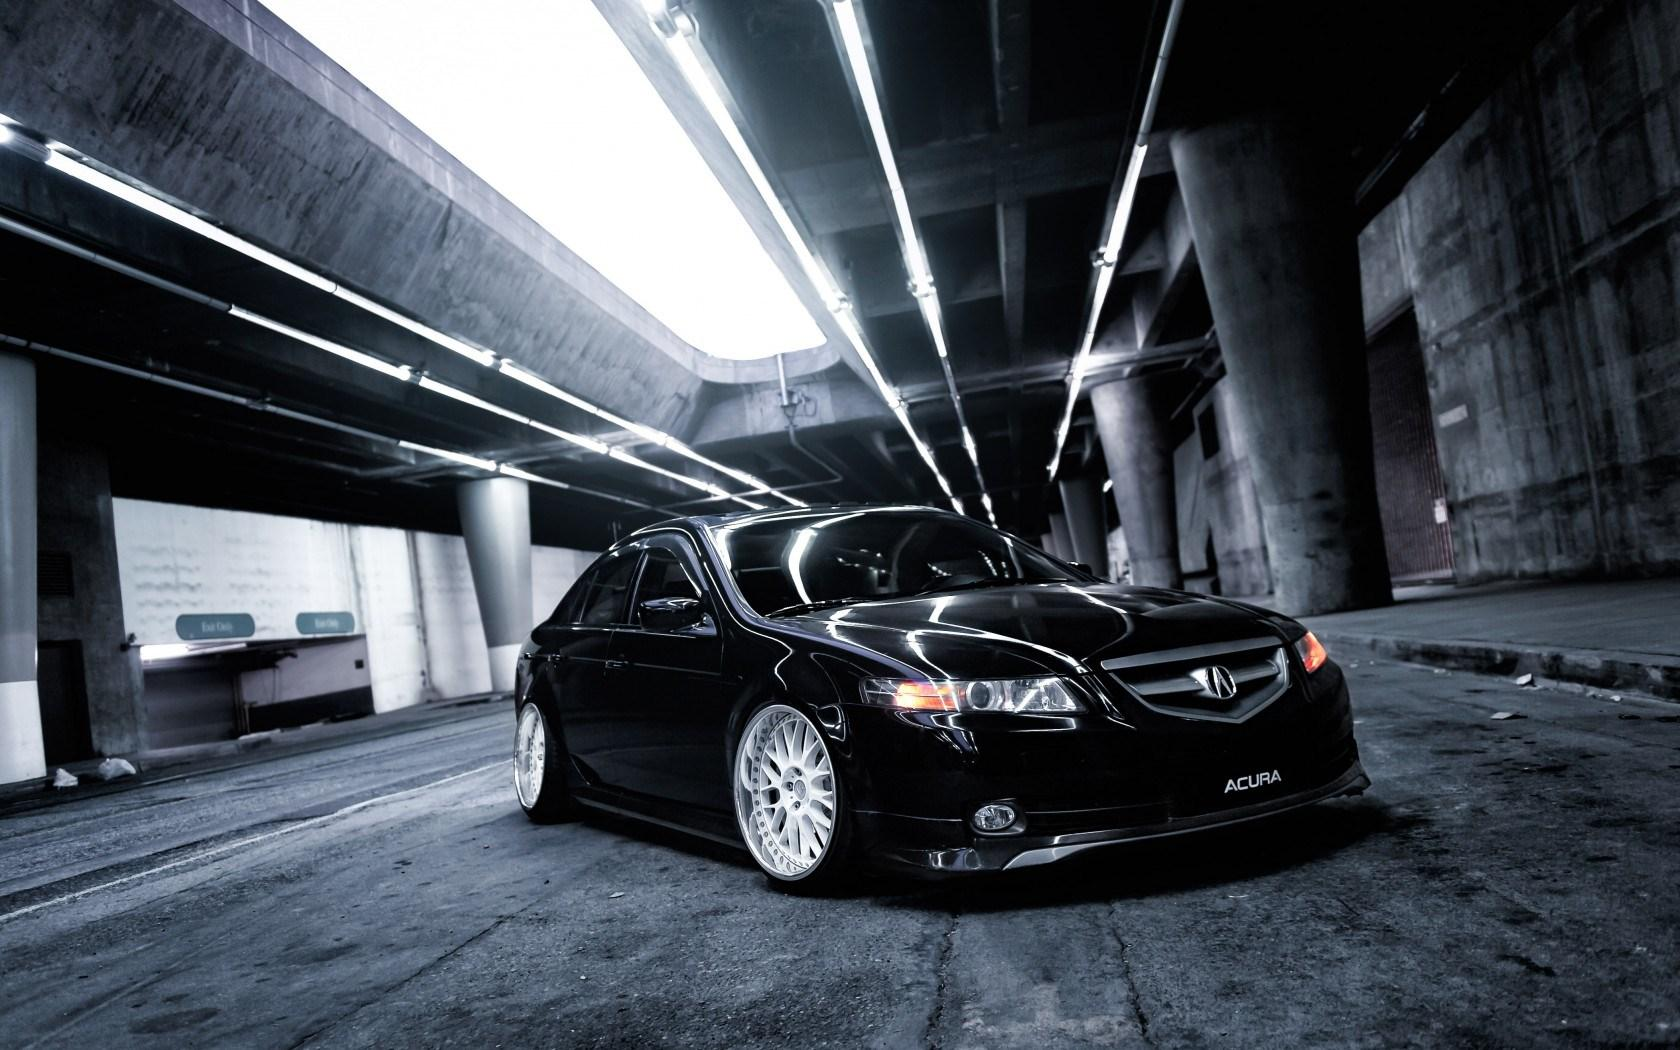 Acura TSX Wallpapers 32250 1680x1050px